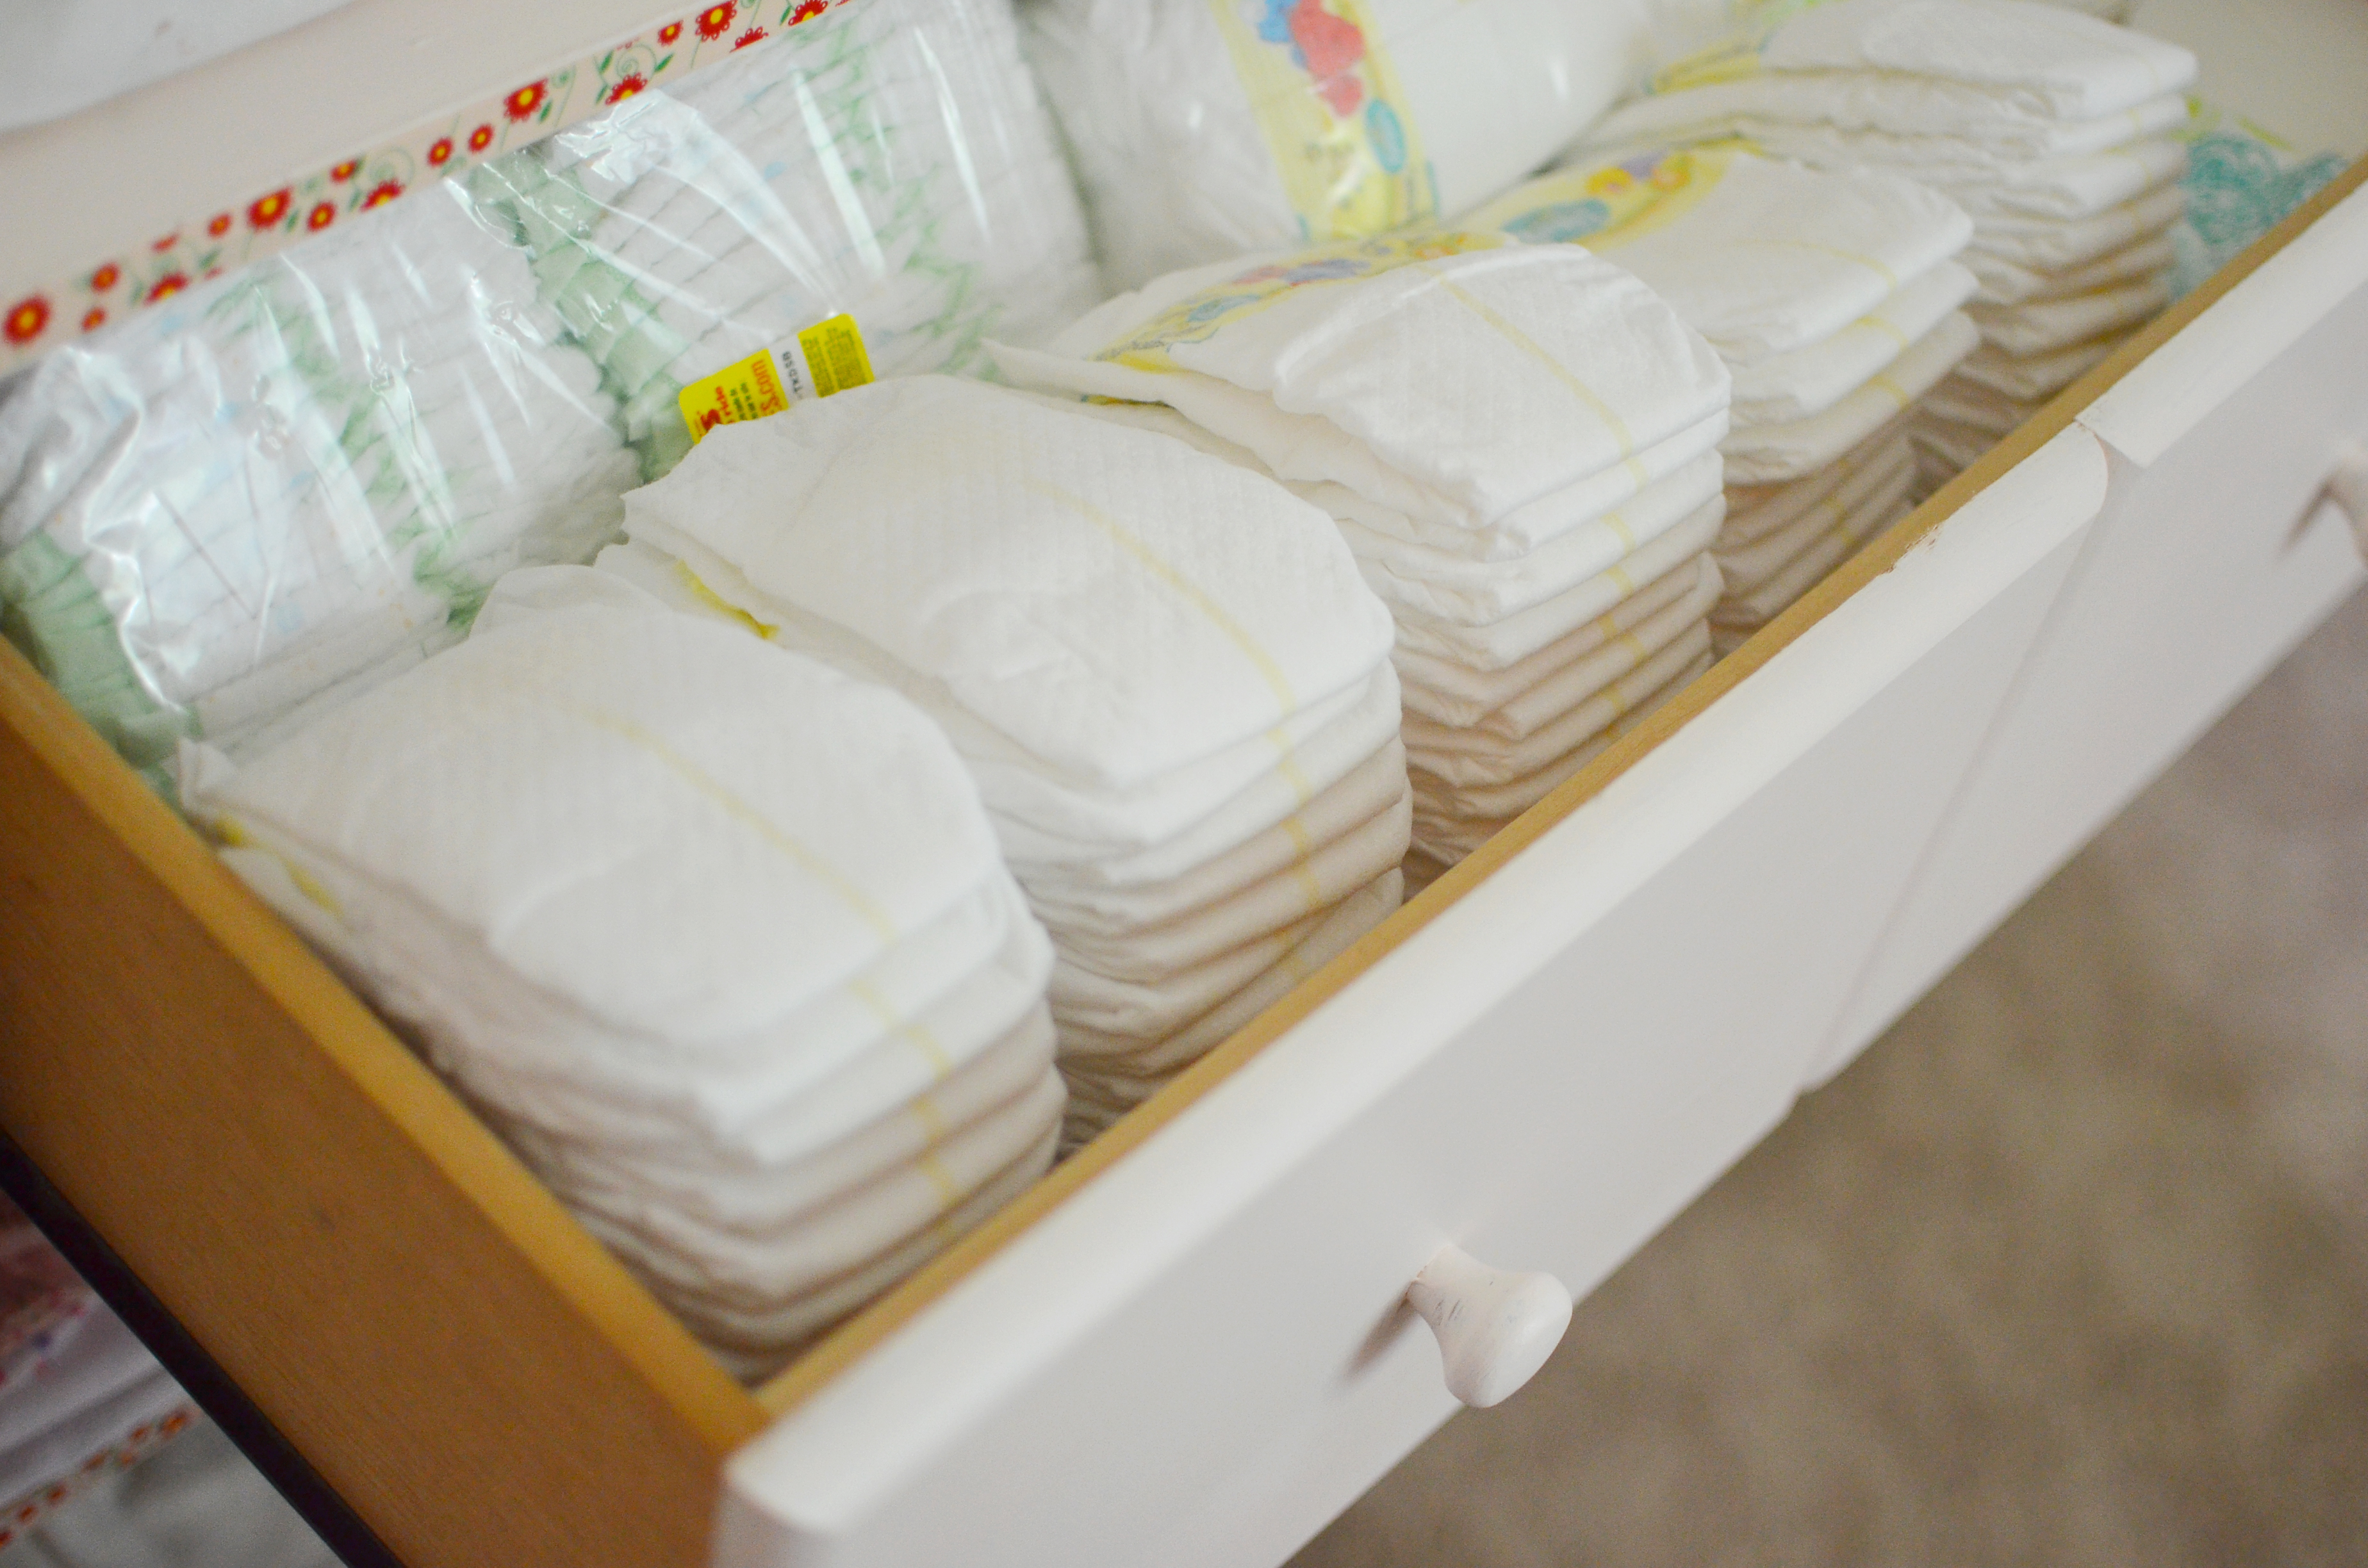 Why You Should Have Separate Diaper Storage for Kids